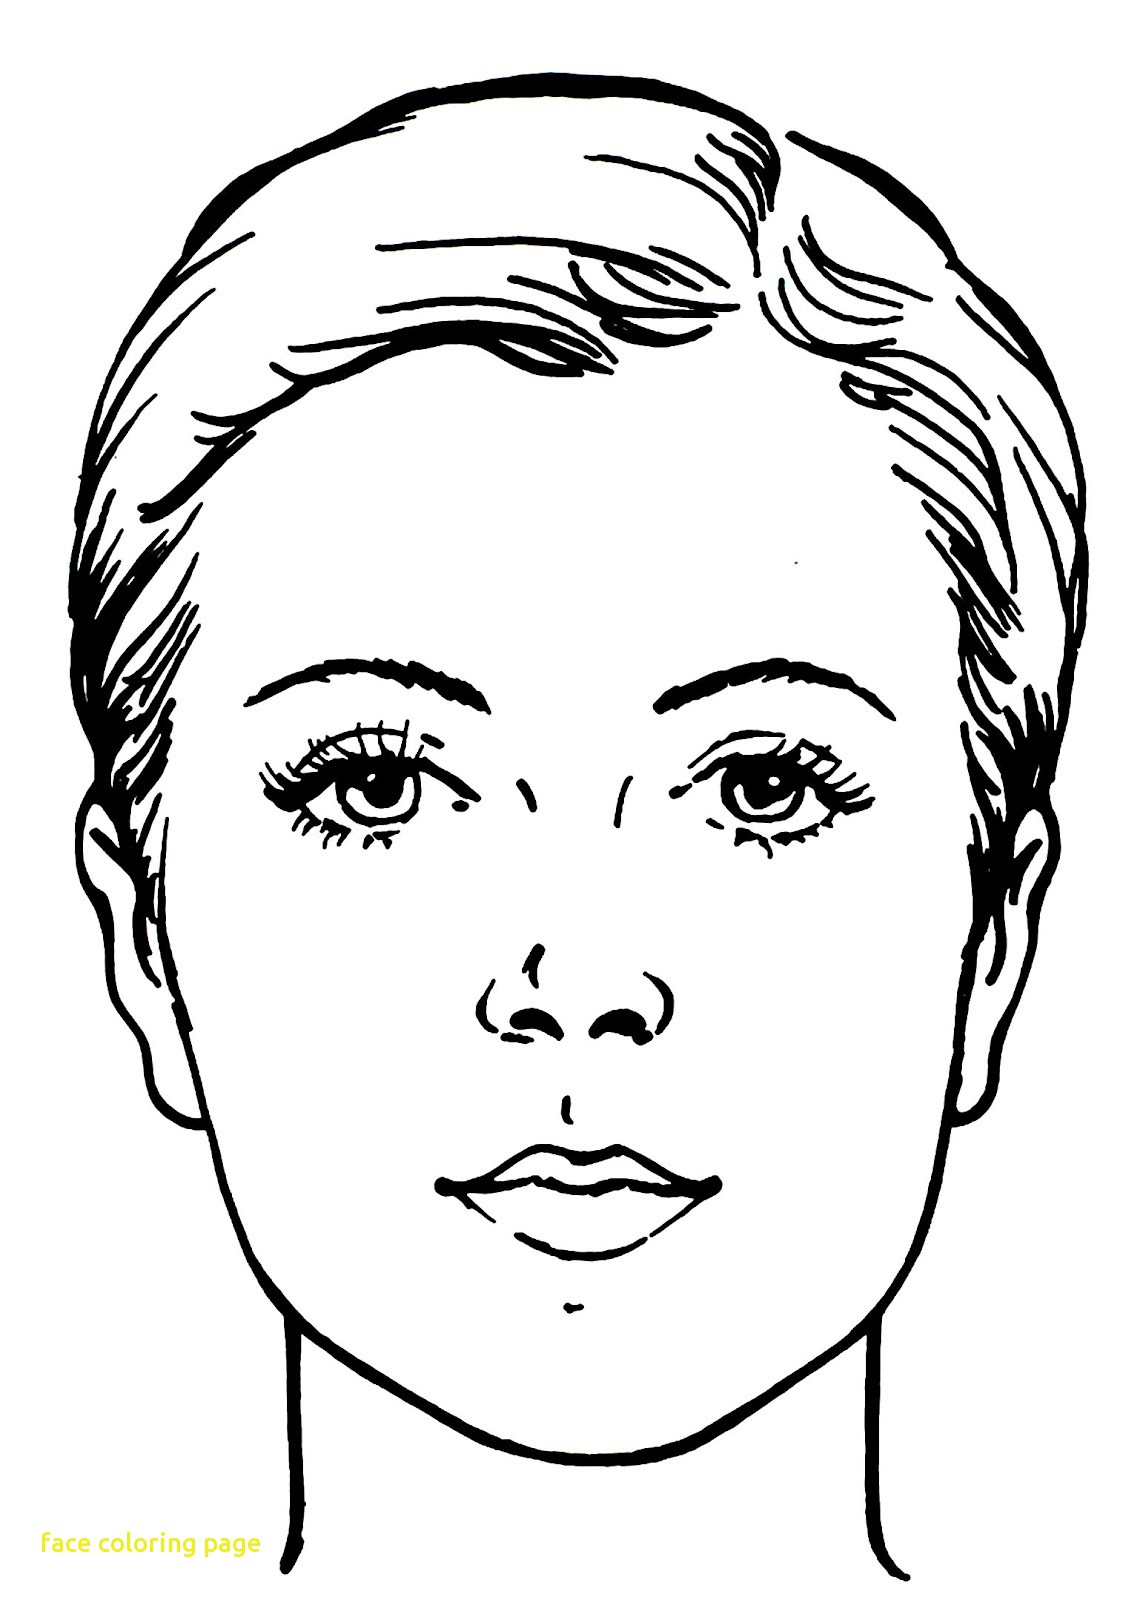 1143x1600 Face Coloring Page With For Kid Face Coloring Page In For Kids